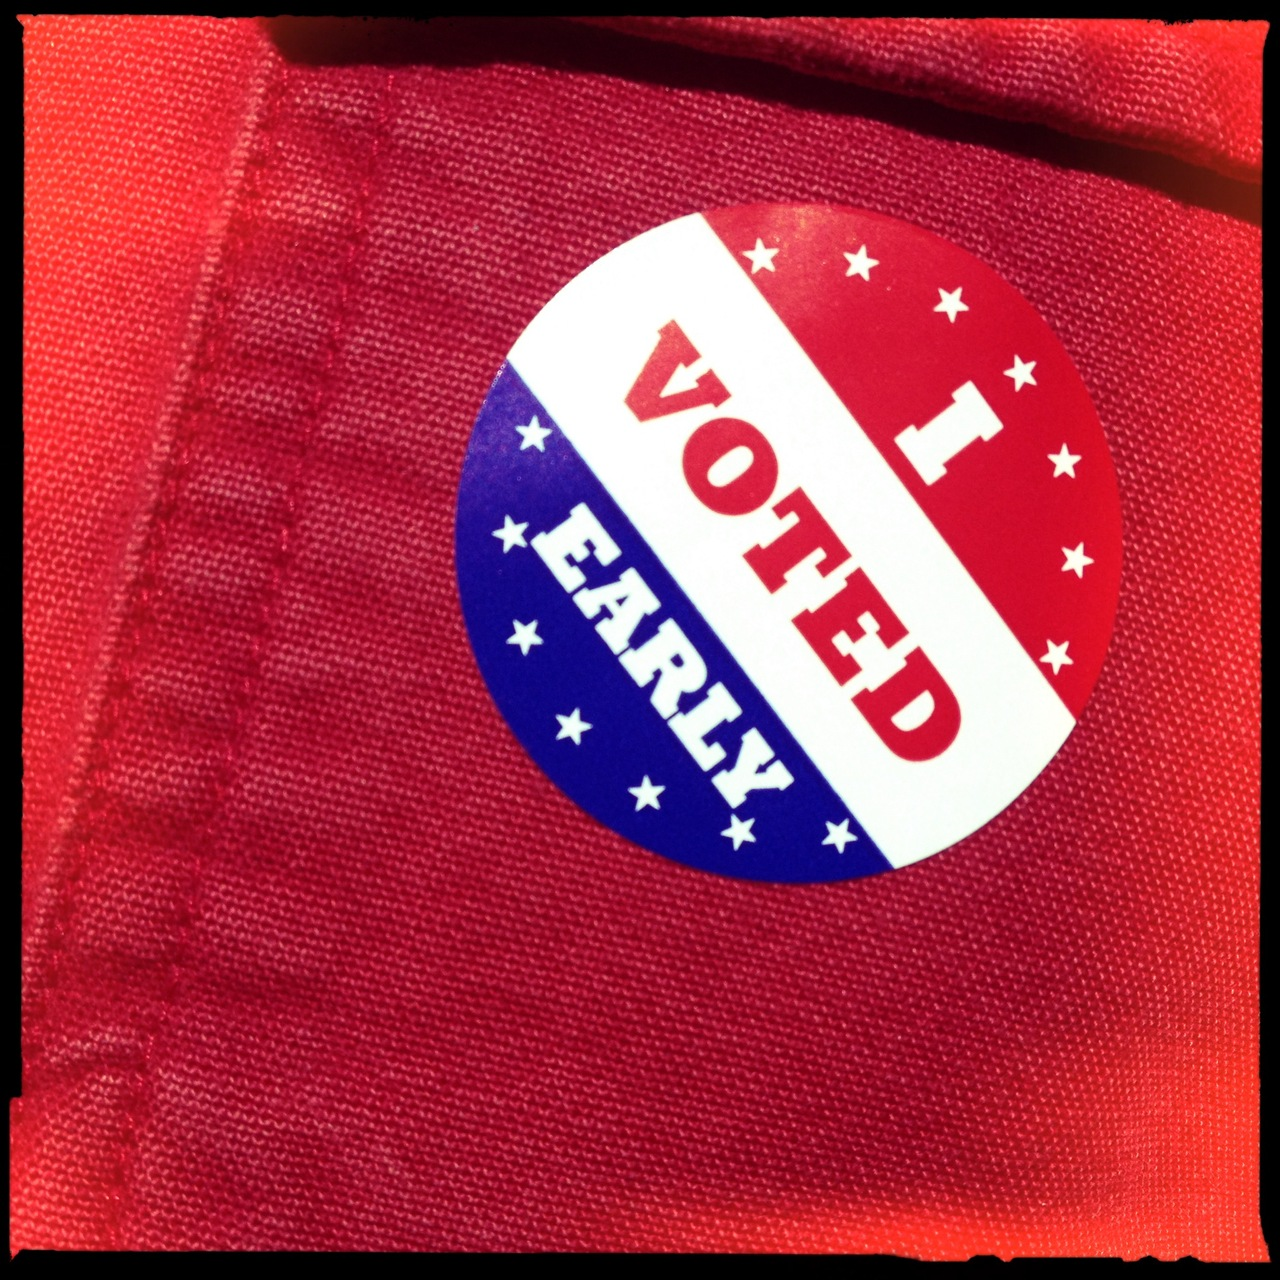 I love voting. I do. This year was the first time I have ever voted early. Felt good, as always, but added perk to avoid the game-day hoopla.